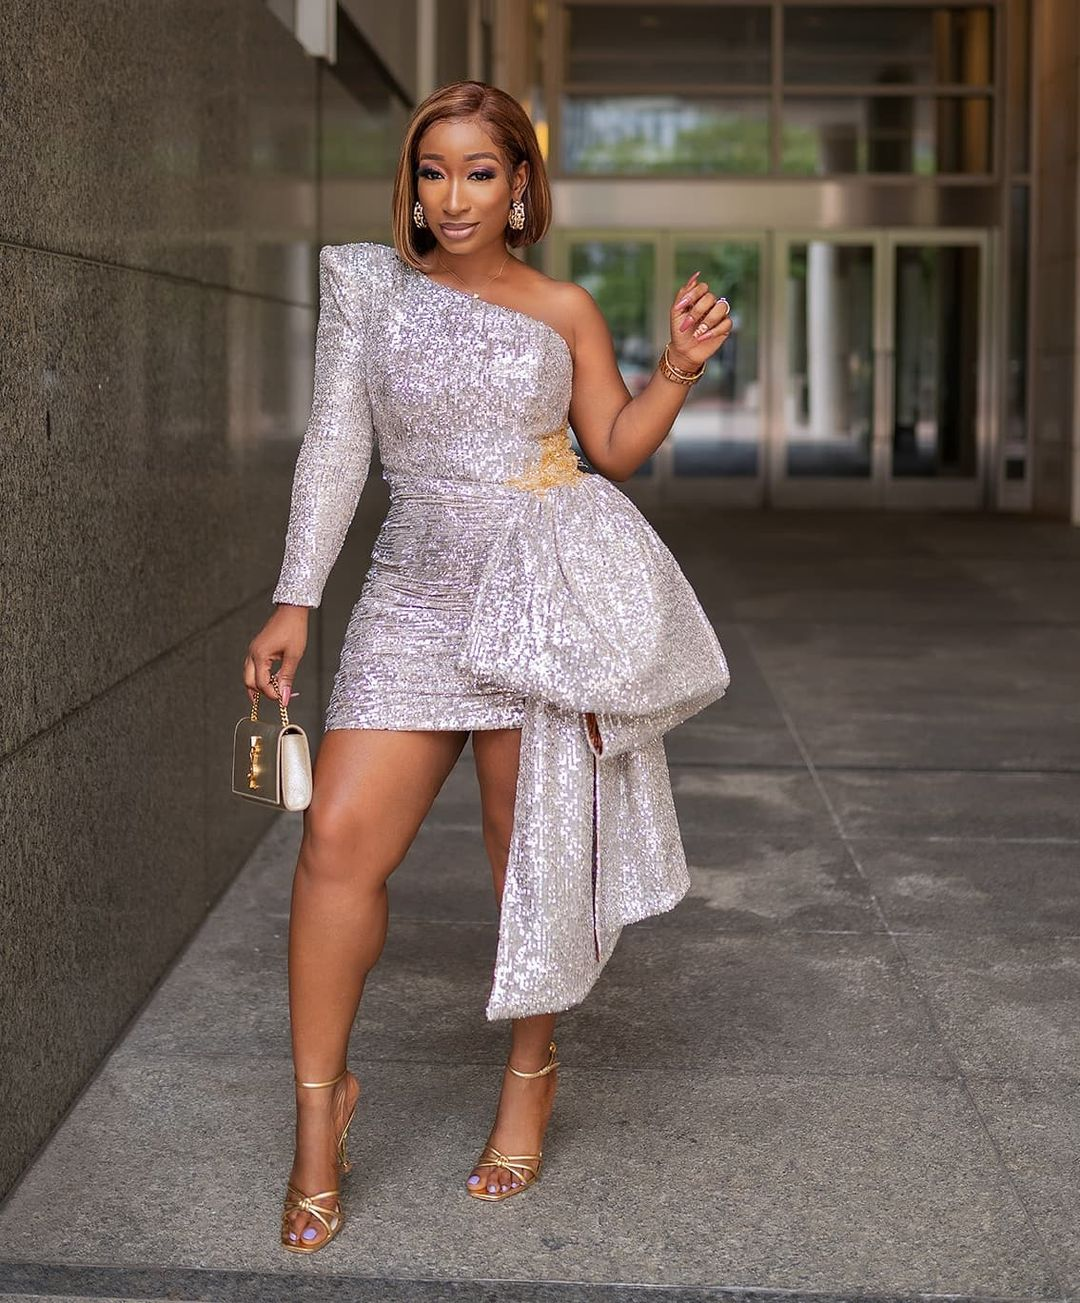 Black Celebrities And Style Influencers